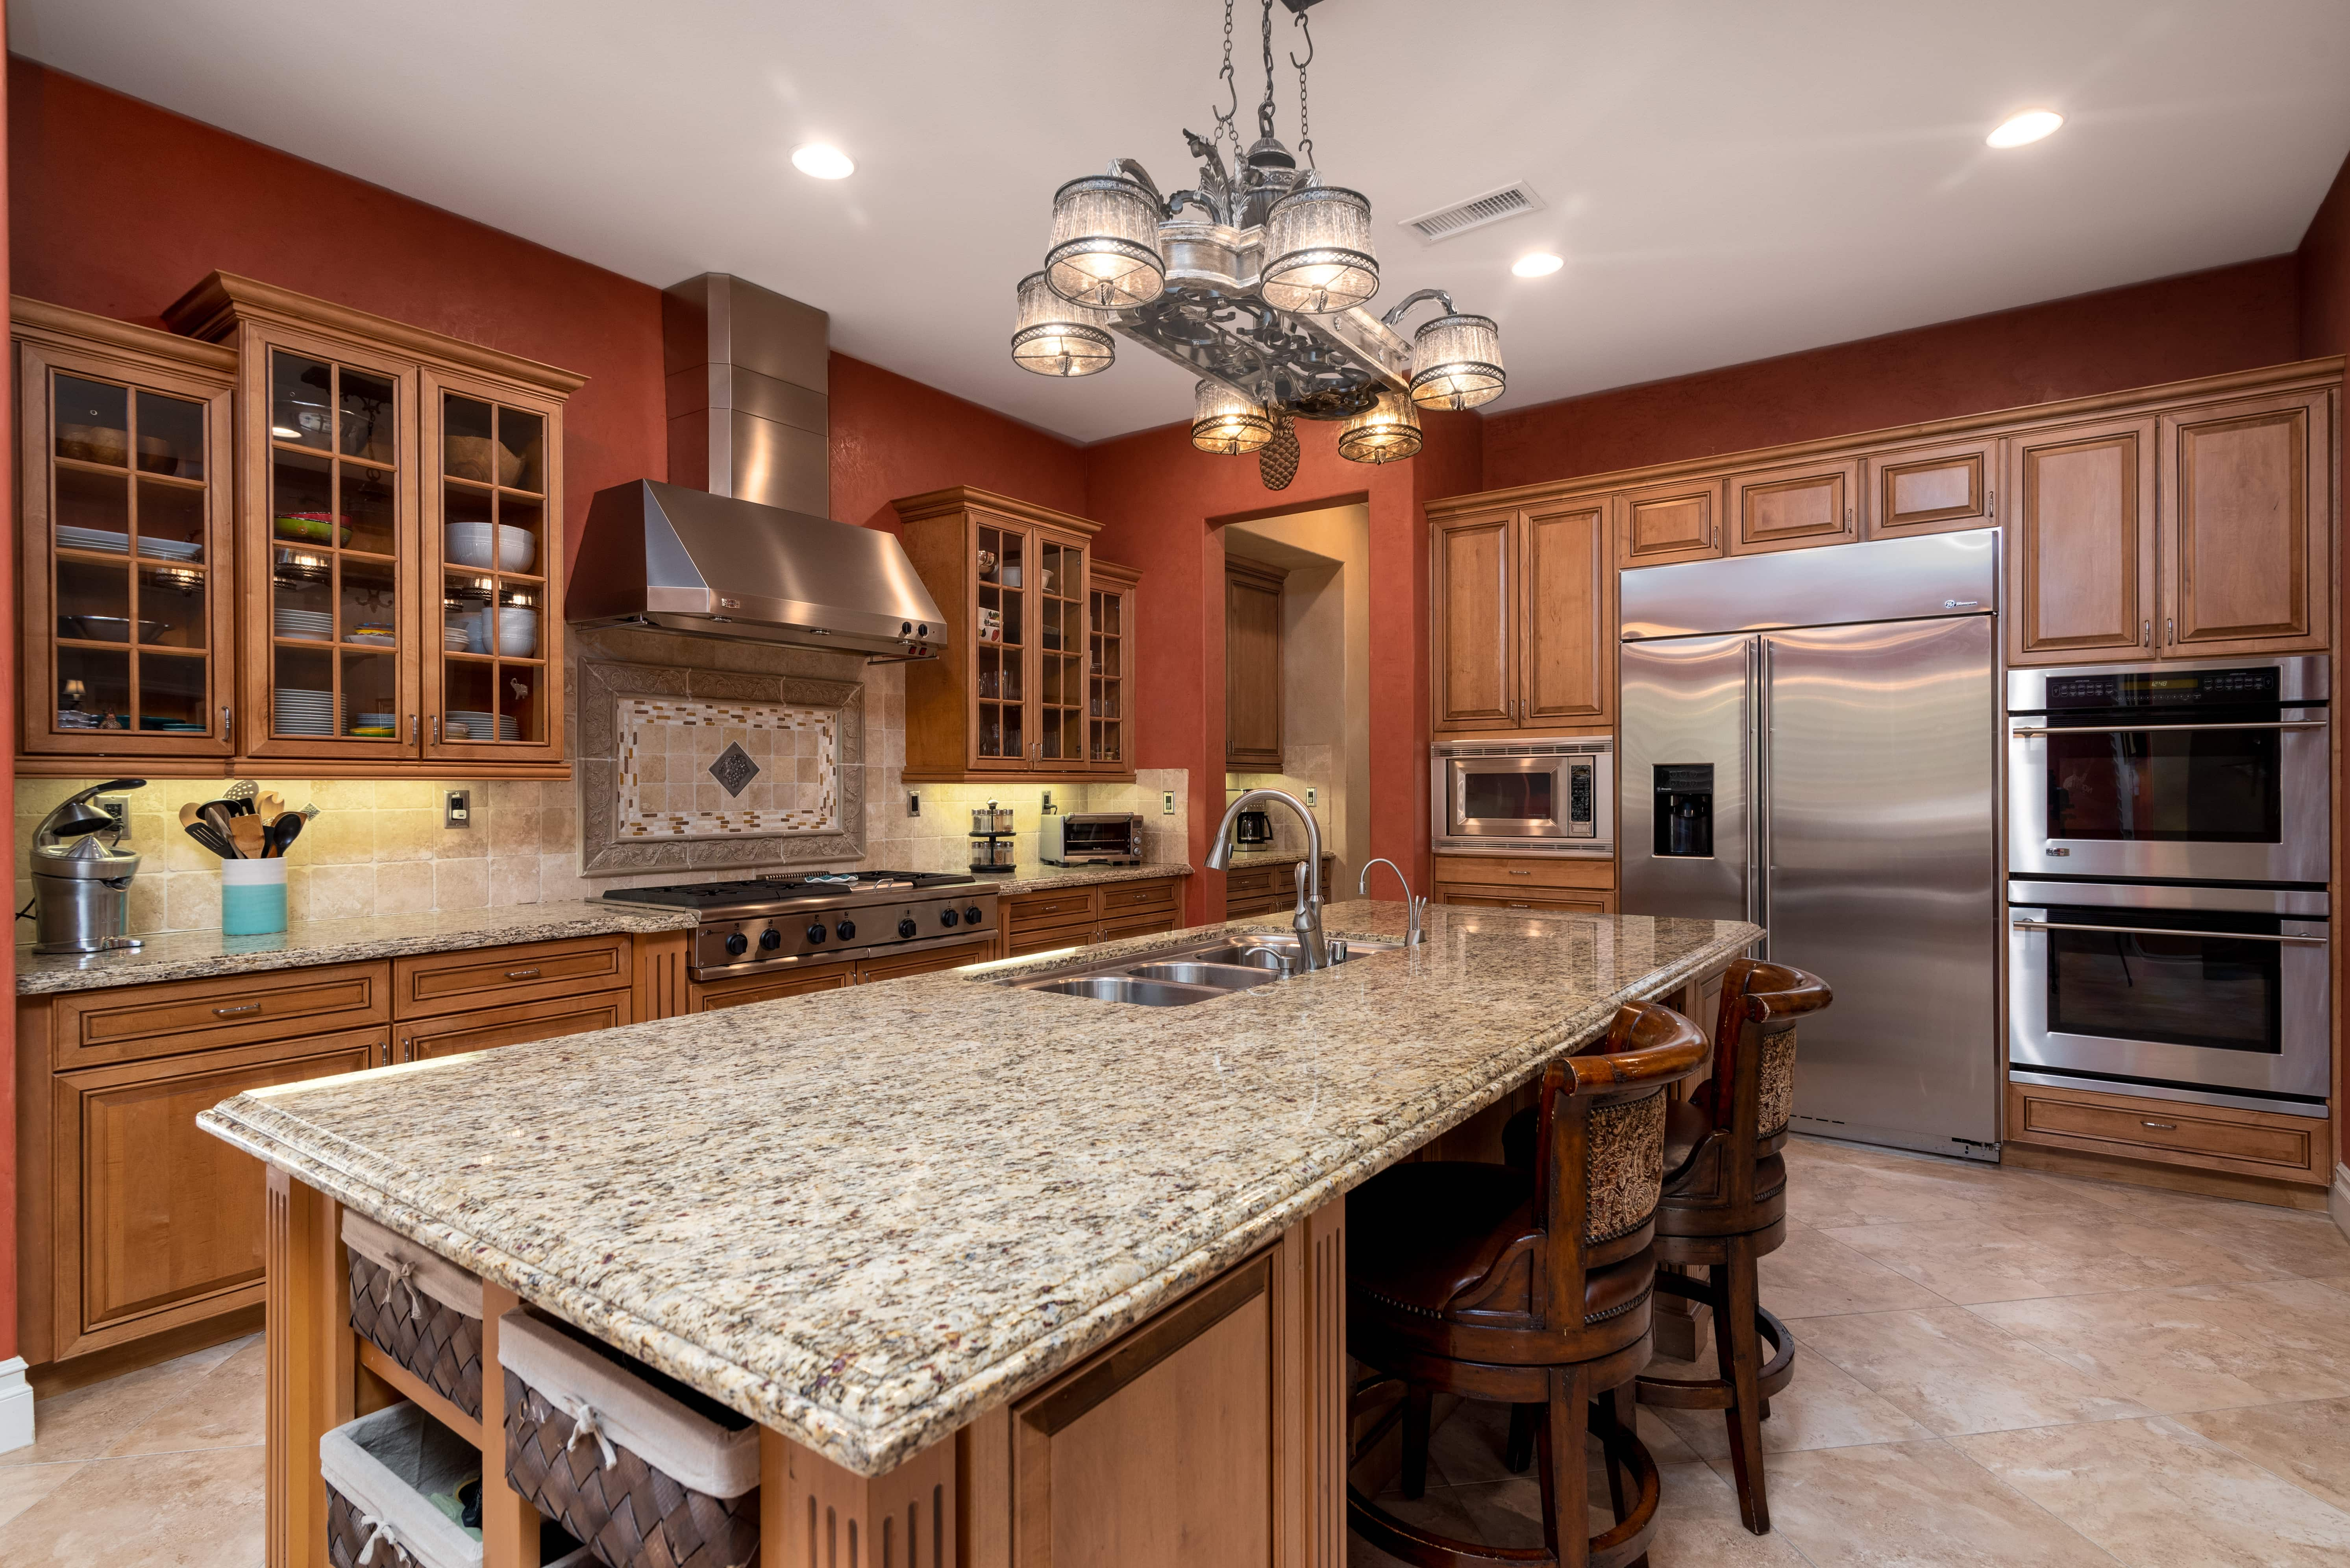 Kitchen with large center island and stainless steel hood range